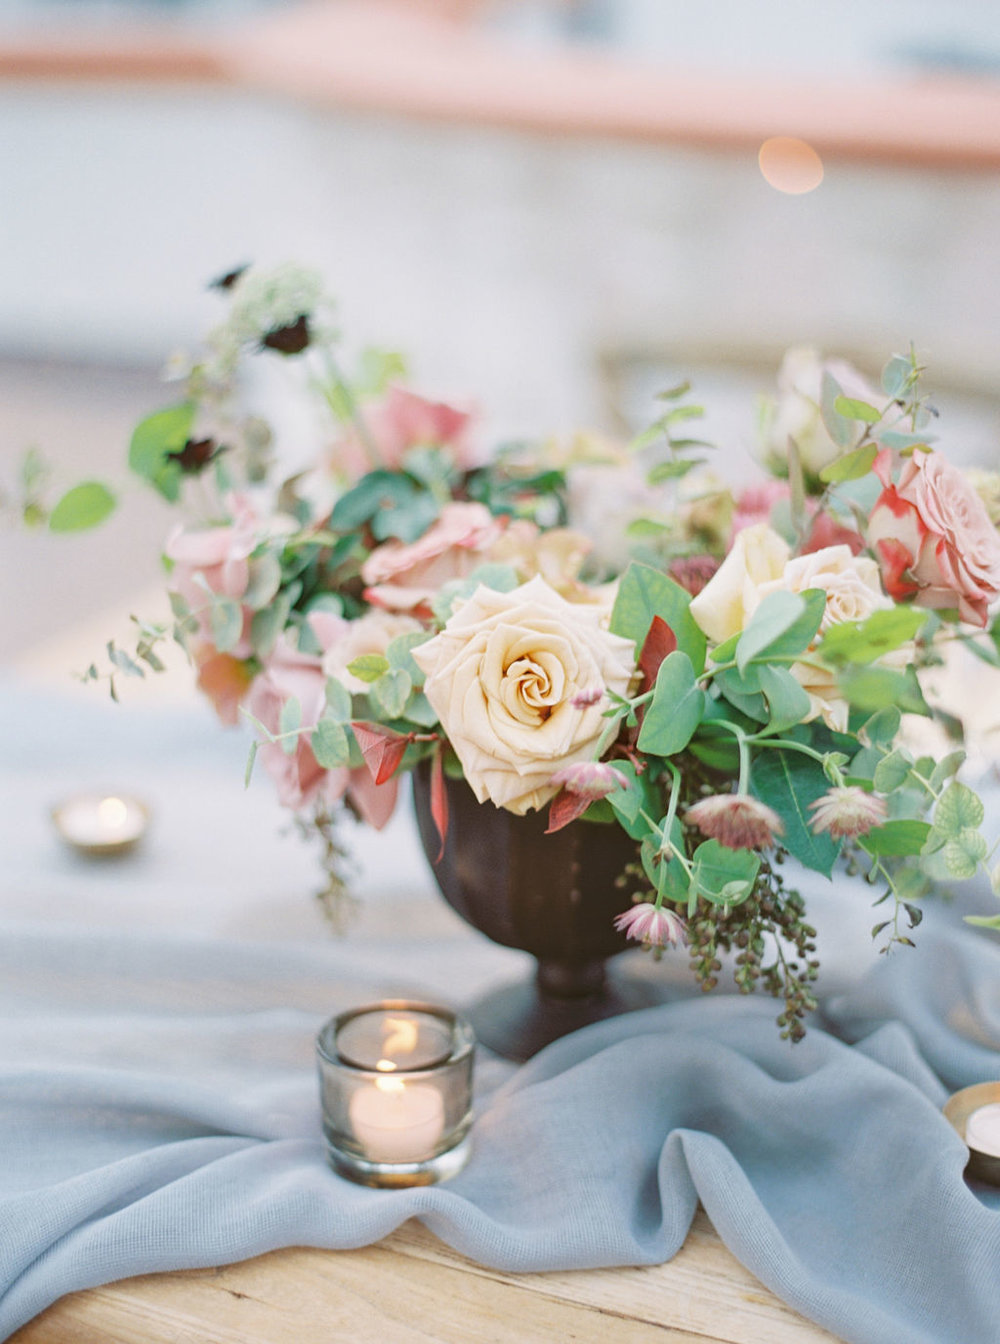 Sweetheart Table Centerpiece by Finding Flora